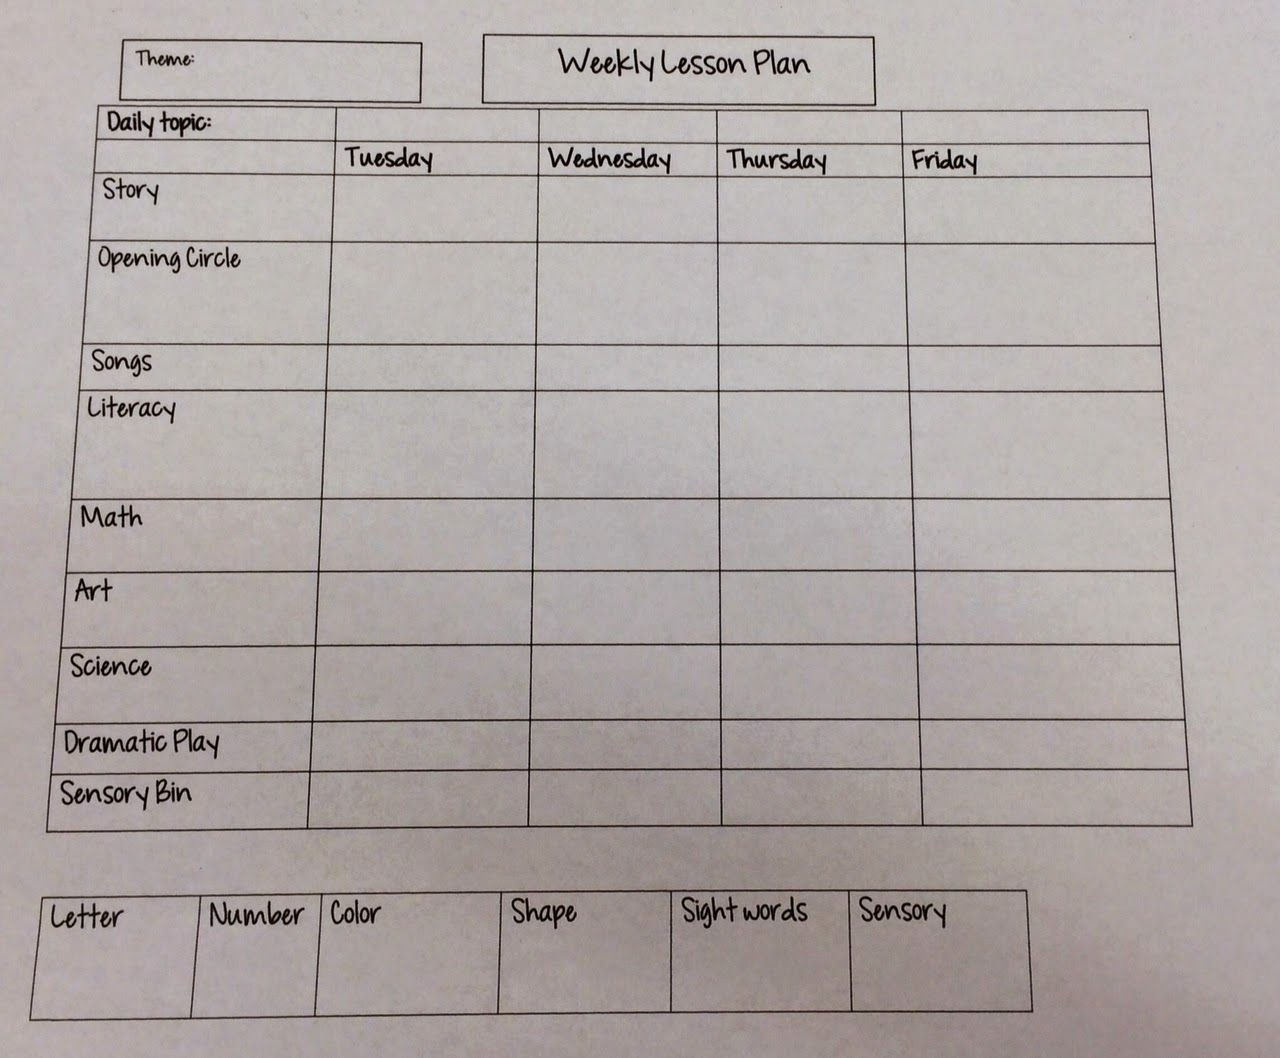 Lesson Plan Template for Preschool Lovely Miss Nicole S Preschool Weekly Lesson Plan Template